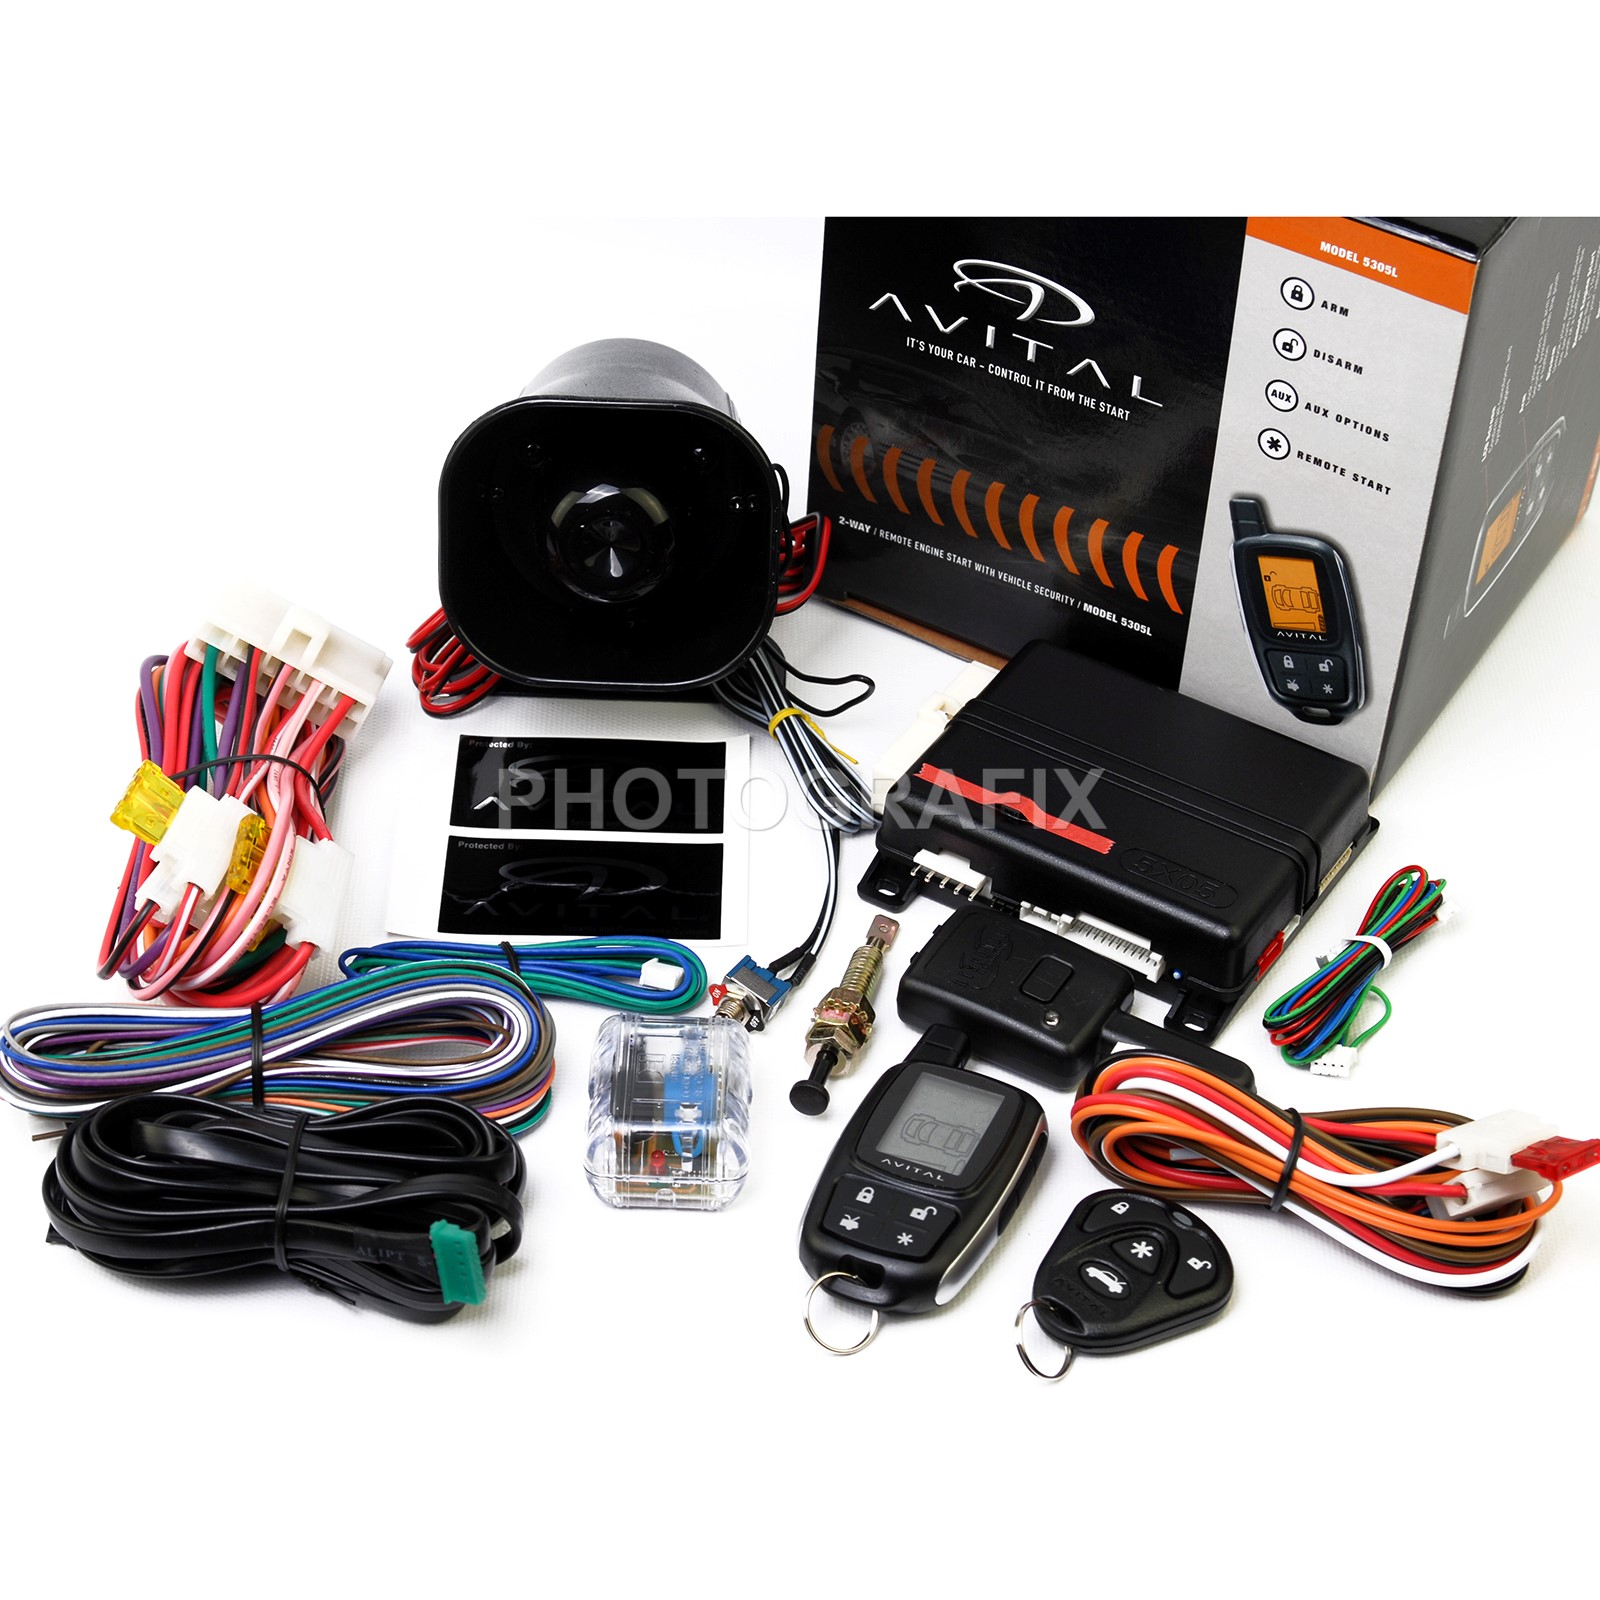 2-Way LCD Remote Auto Car Starter & Alarm & Bypass Module for Acura ,Lexus,Honda